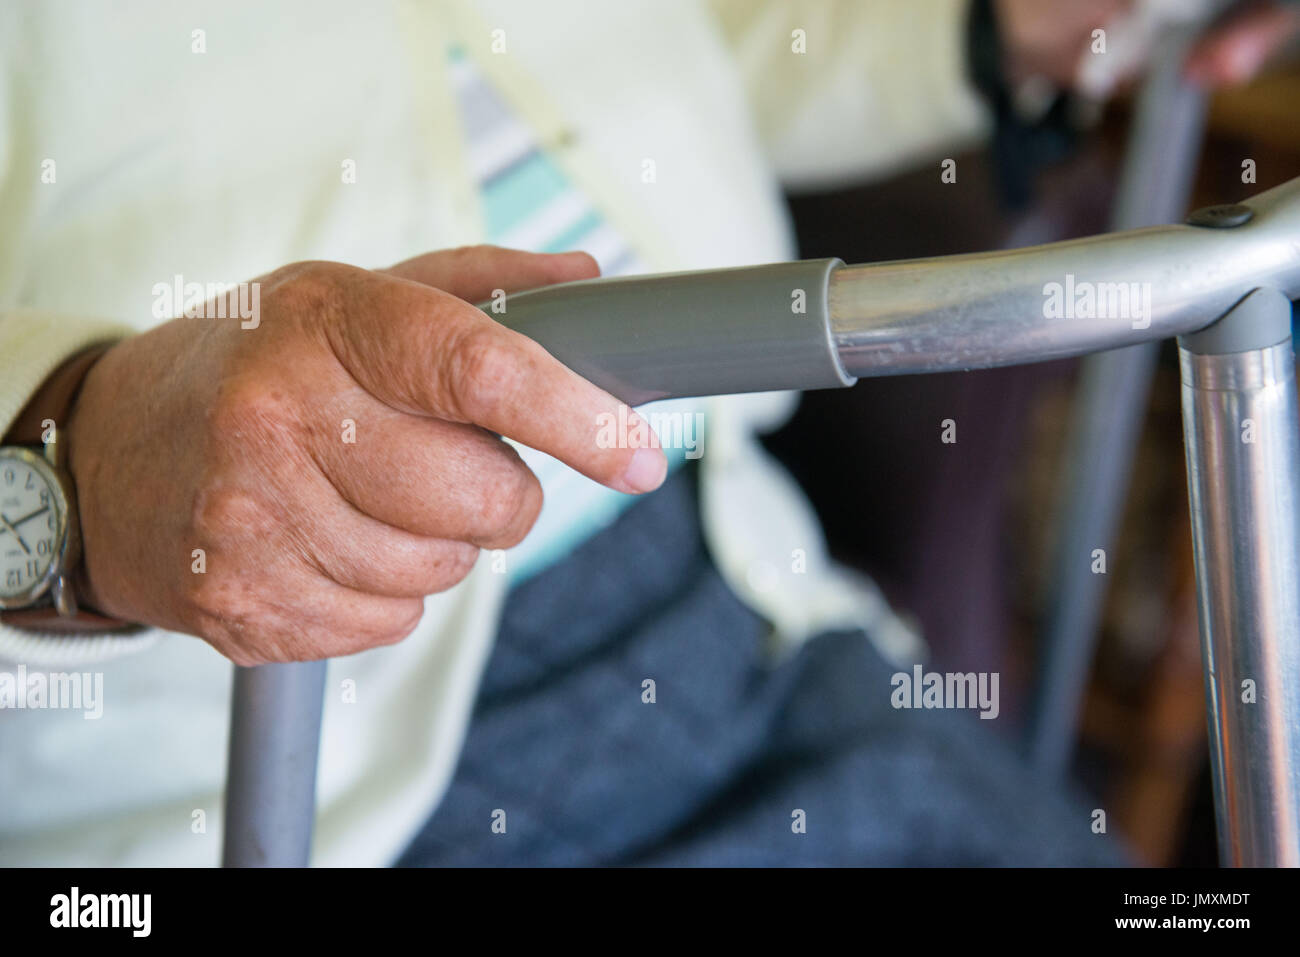 WWW.IANGEORGESONPHOTOGRAPHY.CO.UK Picture: OAP, Pensioner, Zimmer Frame, Mobility, Disability, old age, frail - Stock Image